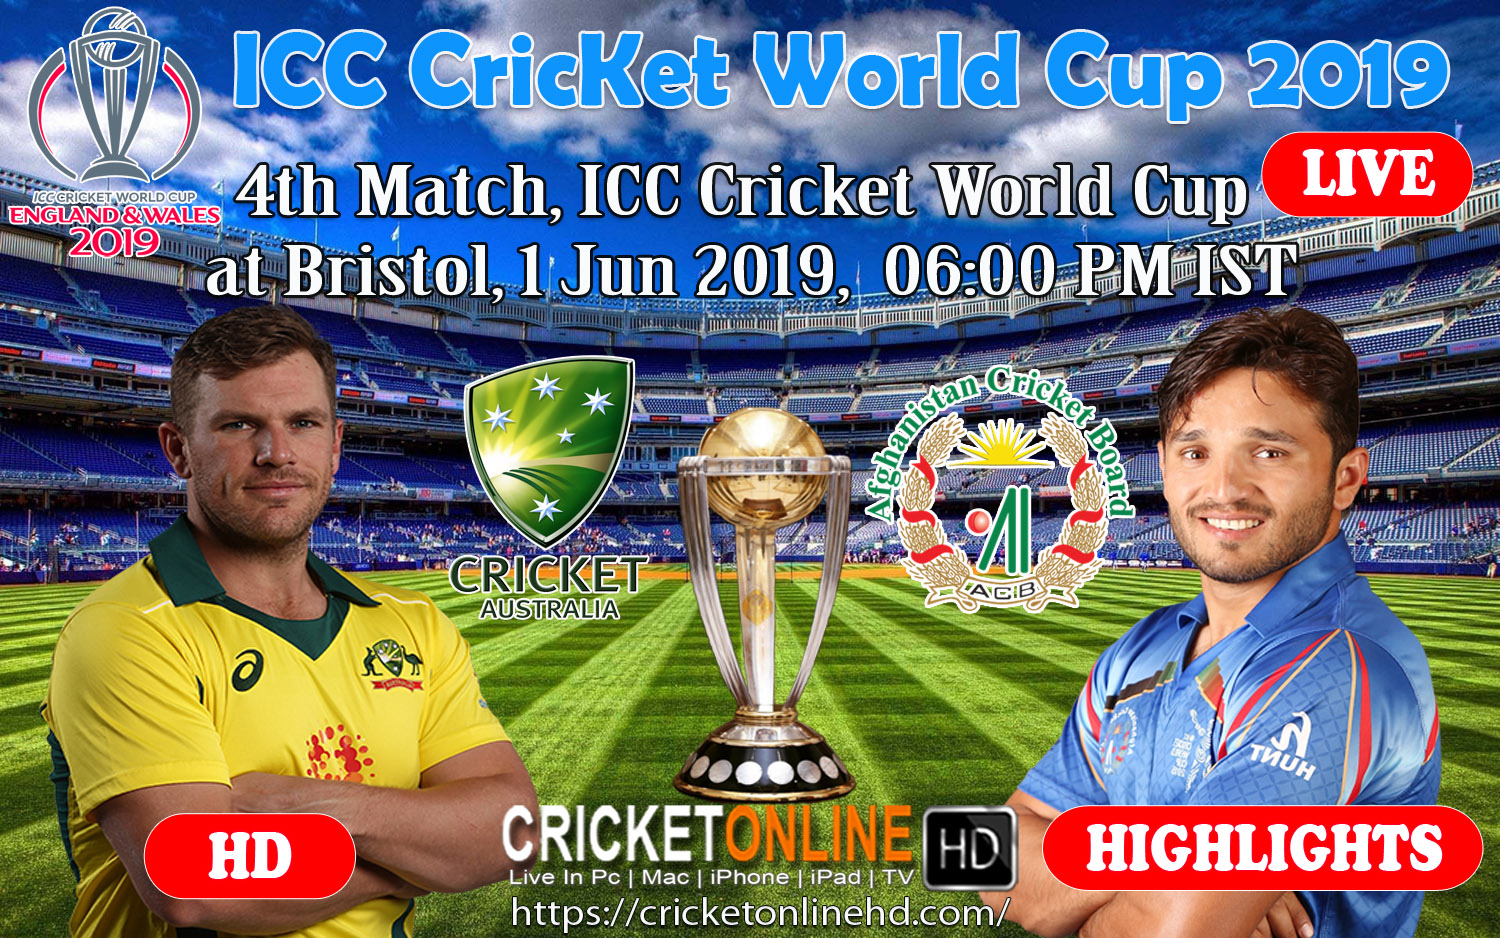 4th match (D/N), ICC Cricket World Cup at Bristol, Jun 1 2019